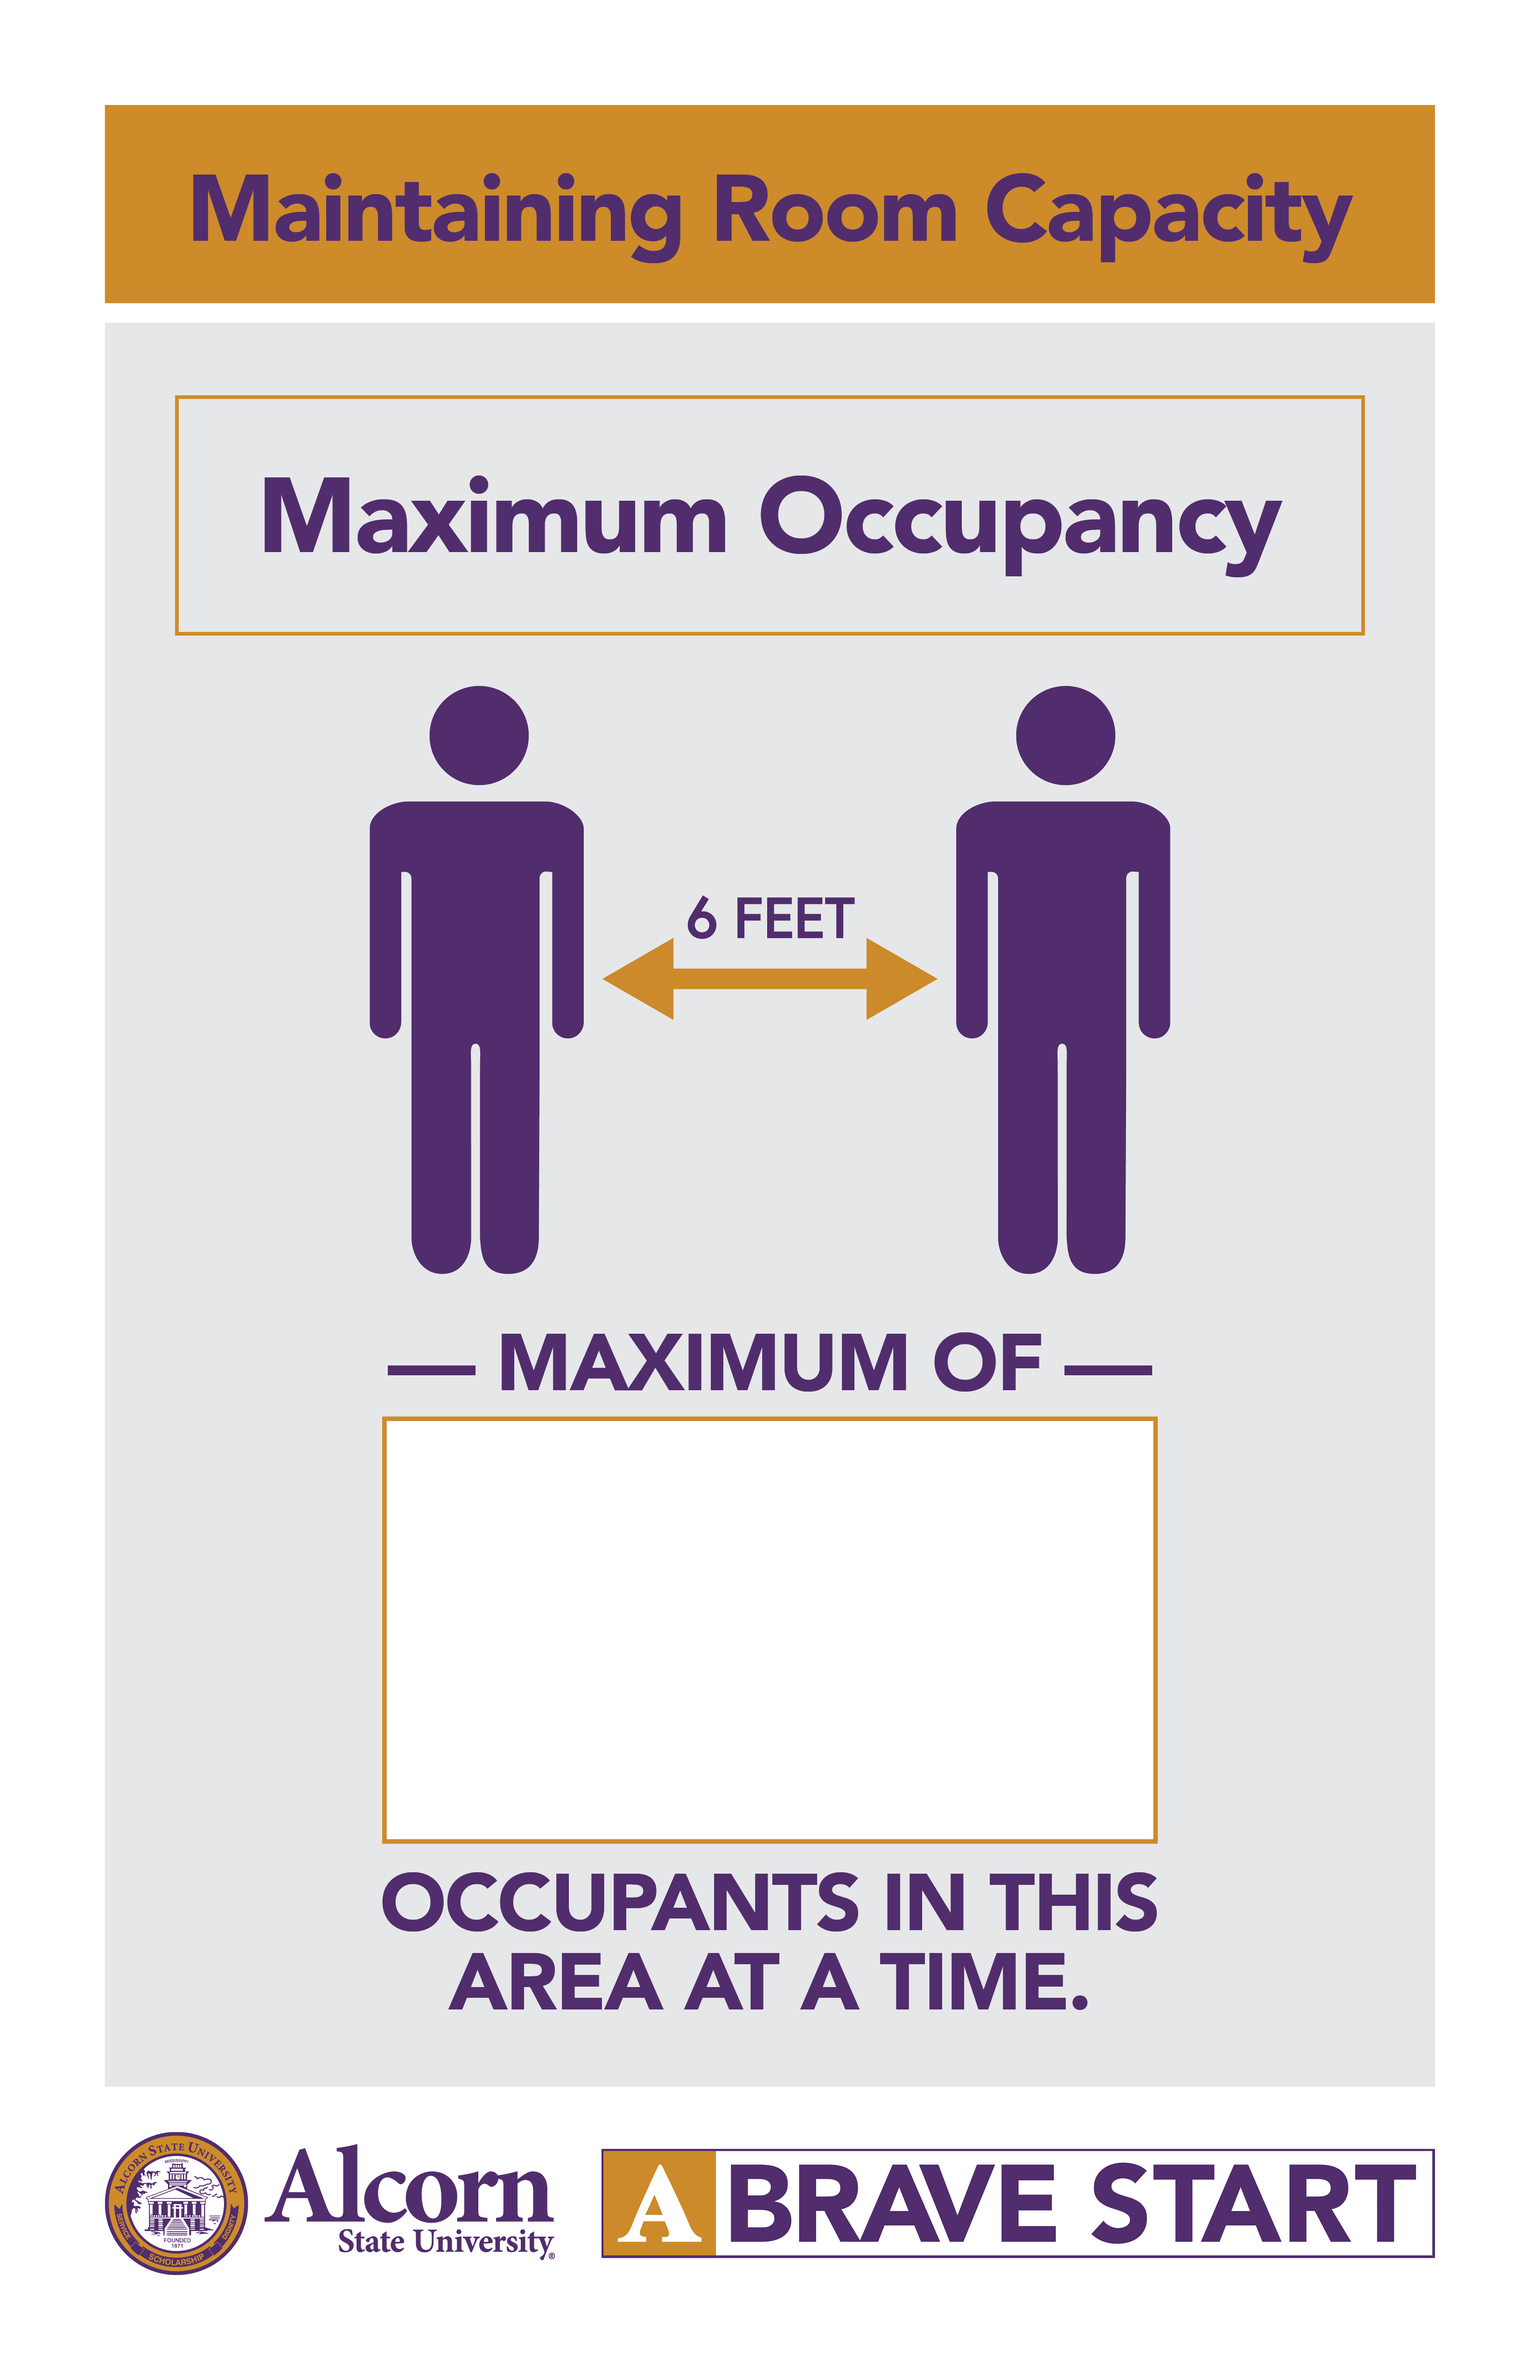 Maintaining Room Capacity. Maximum Occupancy (Picture of two people standing six feet apart) MAXIMUM OF # OCCUPANTS IN THIS AREA AT A TIME. (Alcorn logo mark. A Brave Start logo mark.)